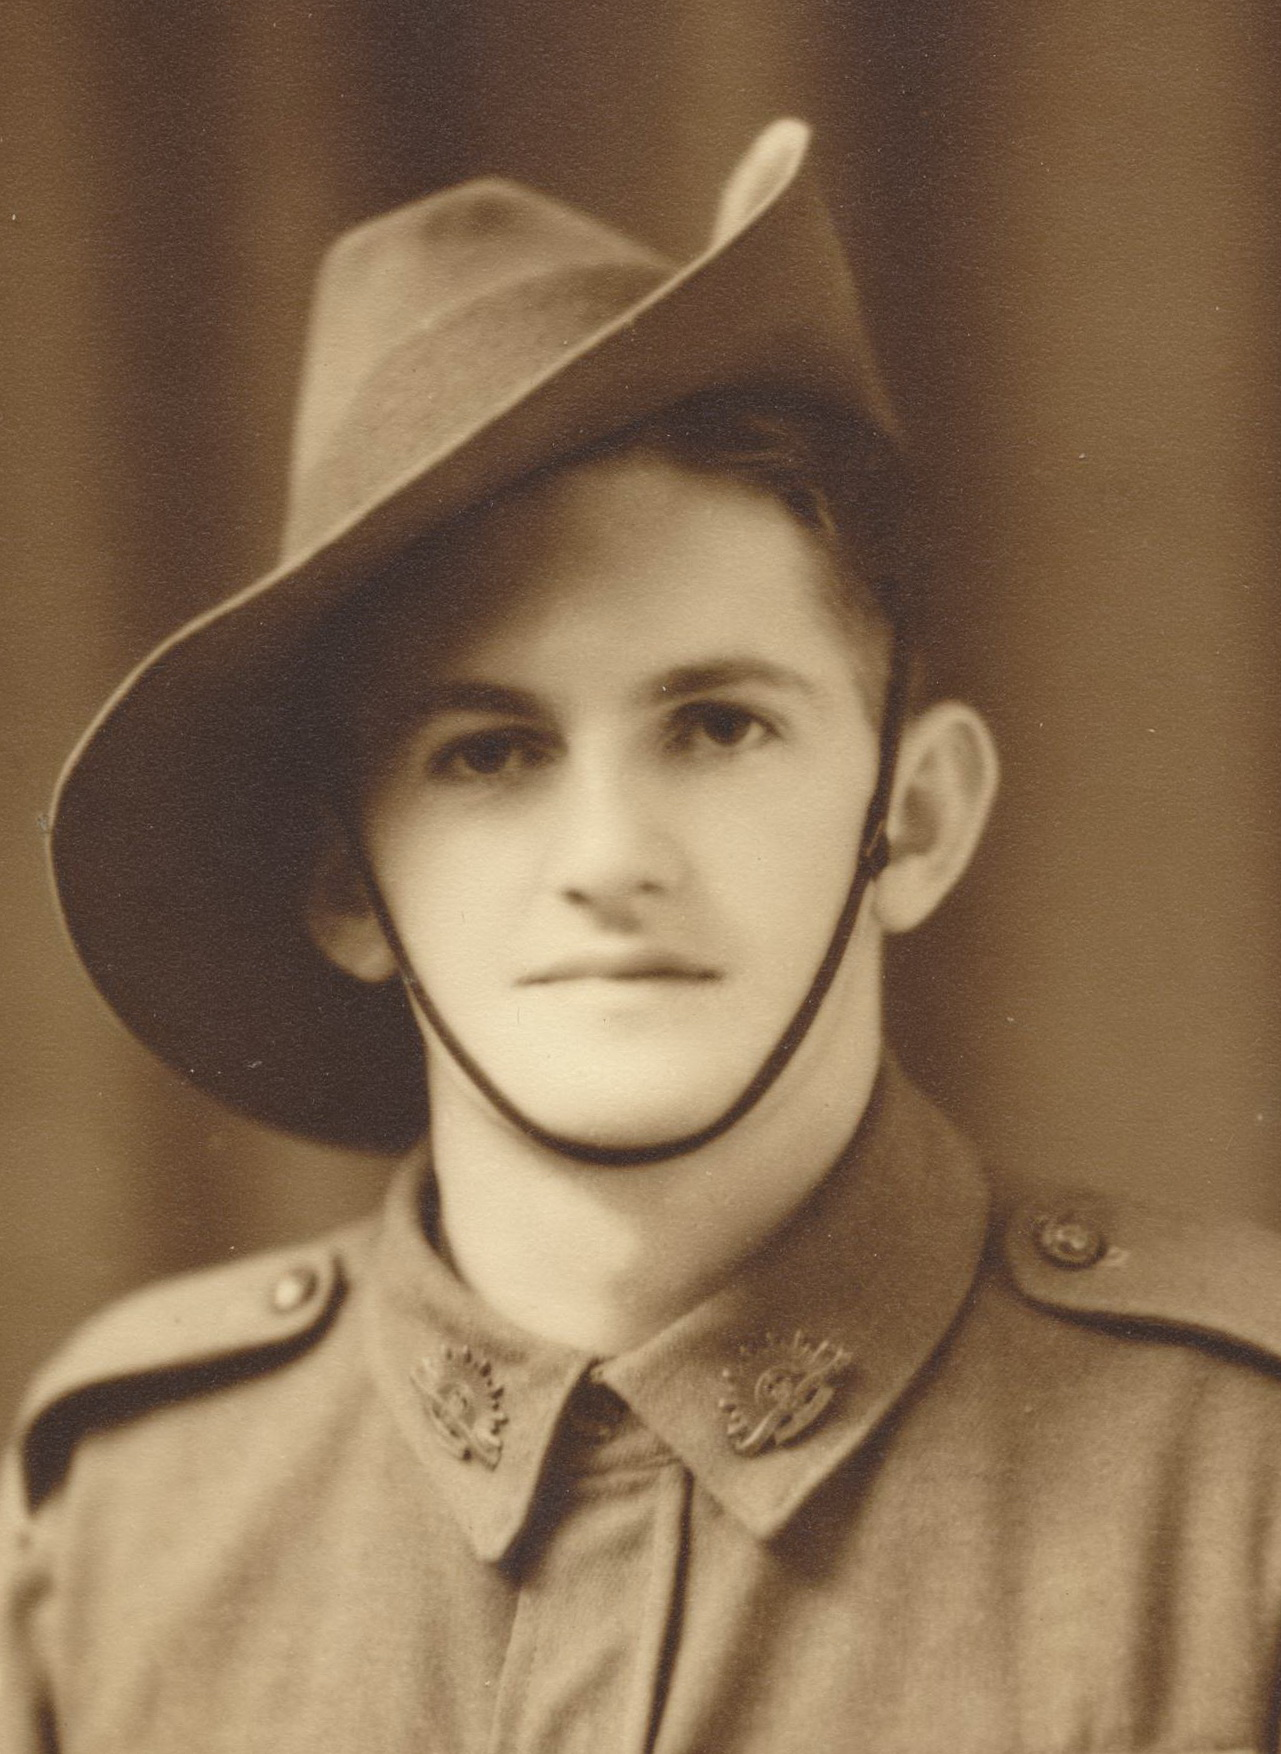 Keith Petty in Australian Army uniform